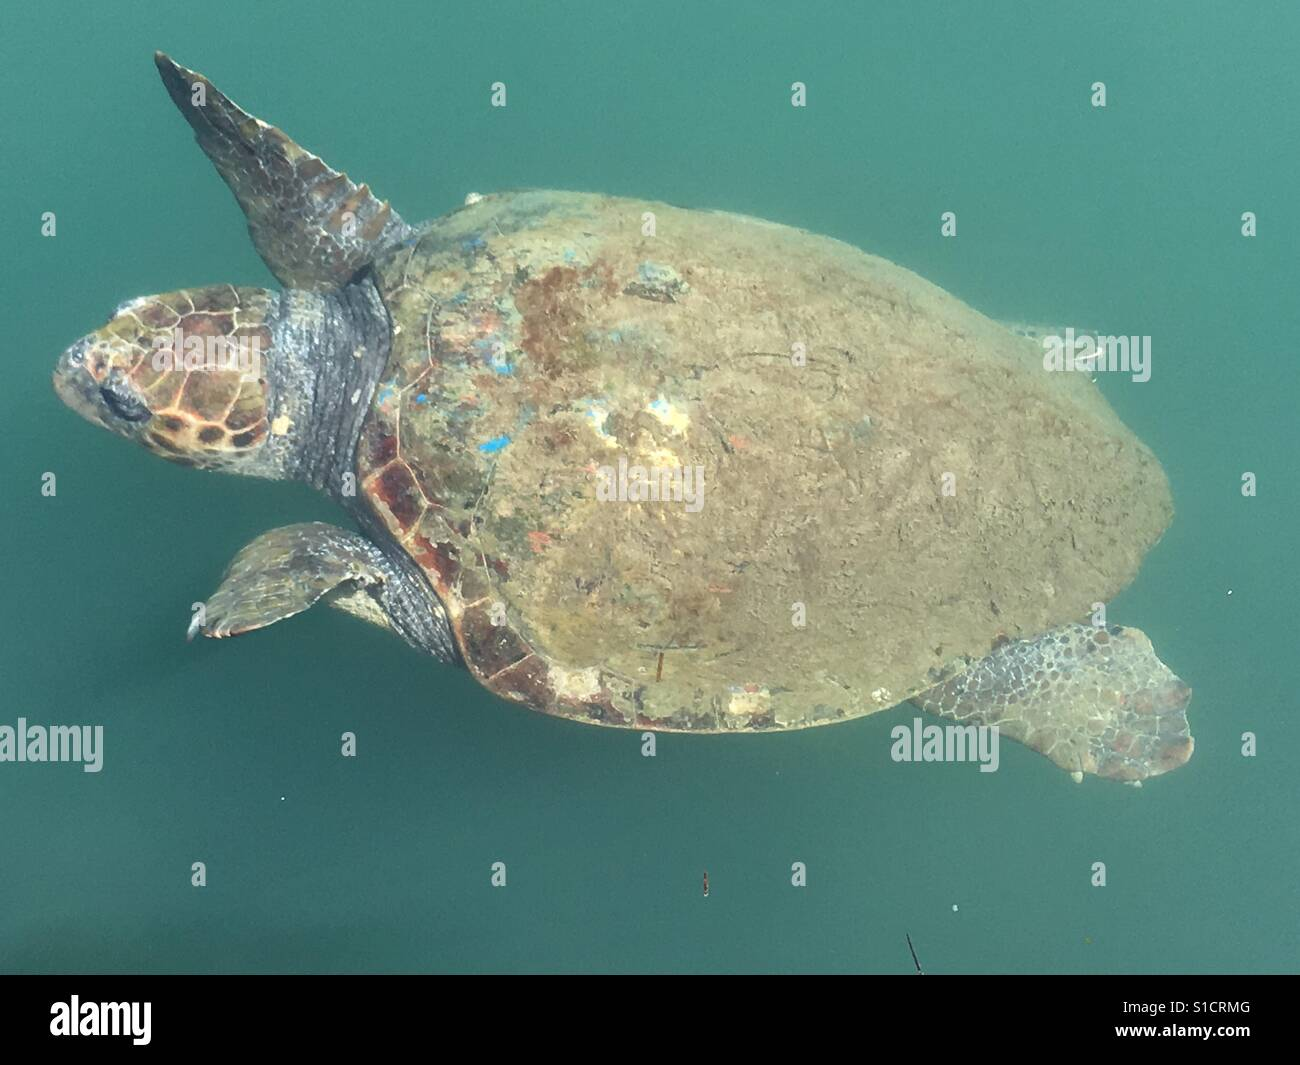 Turtle swimming in a murky sea - Stock Image